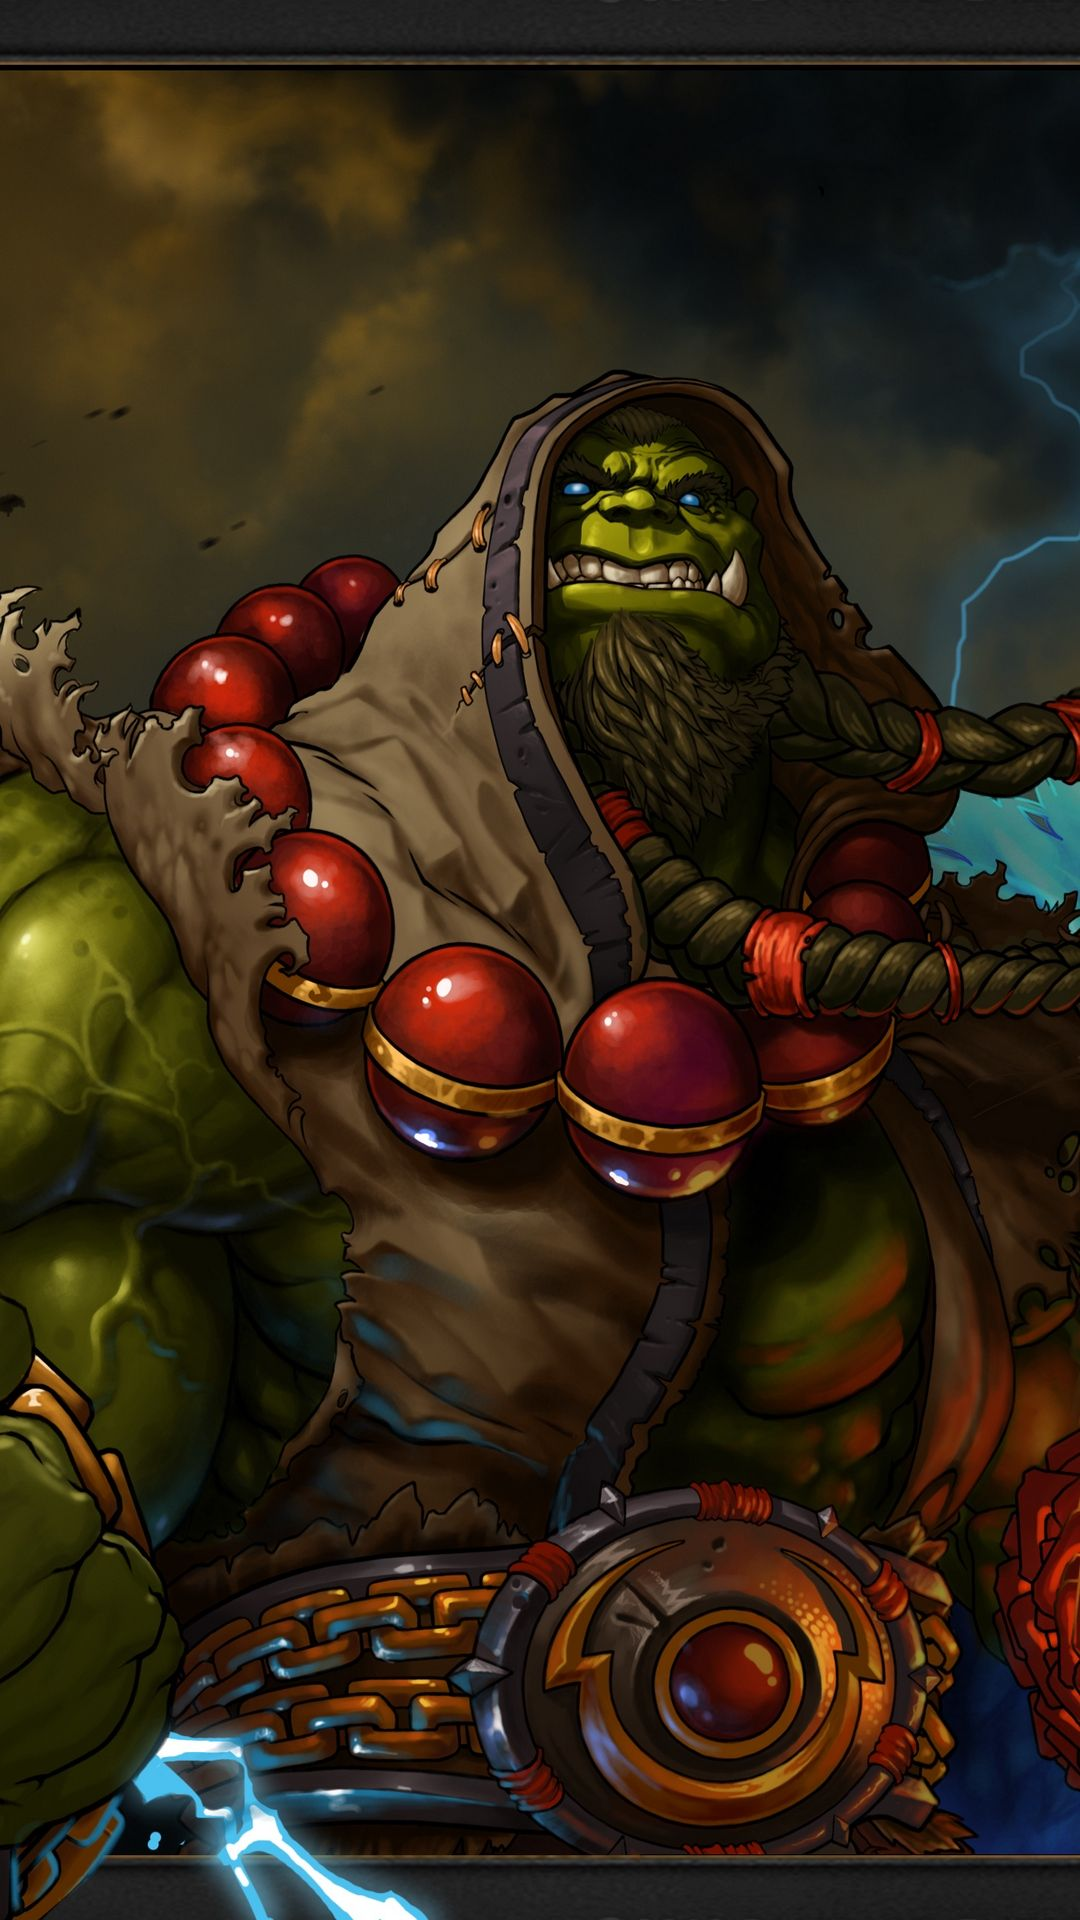 World Of Warcraft Thrall Shaman Test1 Games Wallpaper